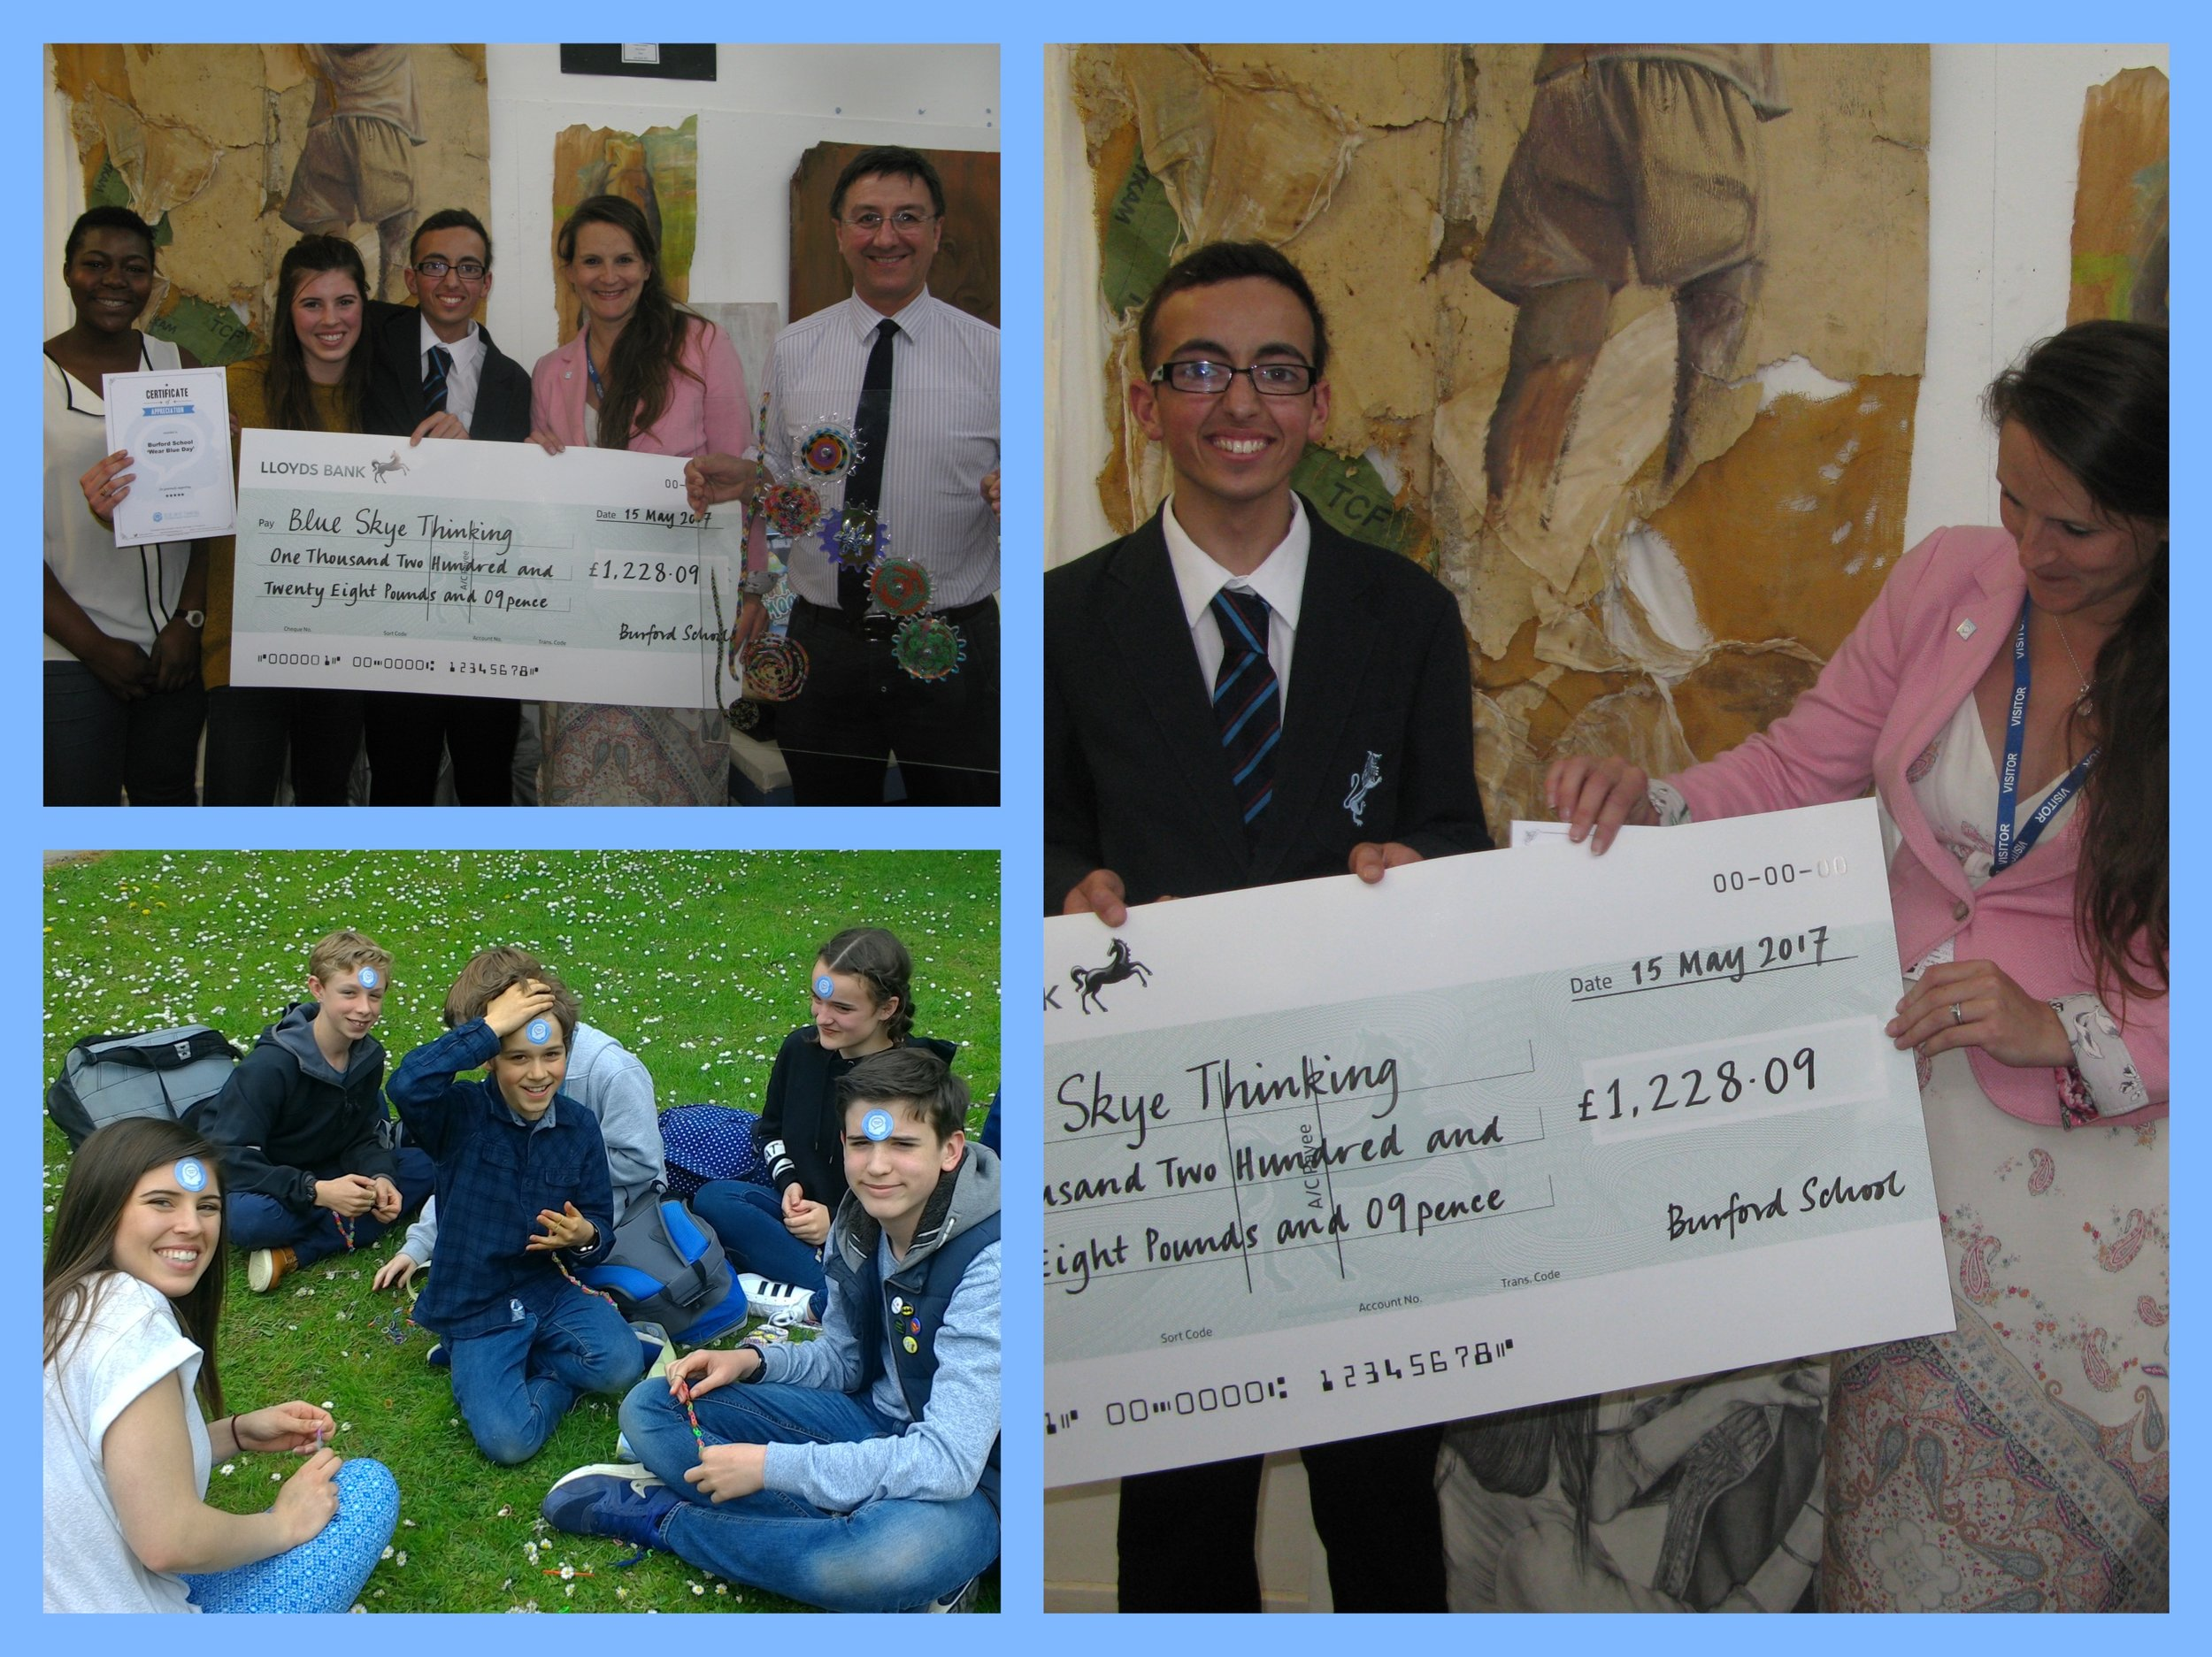 Huge thank you to our Ambassador Jack Godfrey and Burford School for raising a whopping £1228.09 by holding a 'Wear Blue' day. It was an absolute pleasure to meet so many staff and pupils who were all so enthusiastic about the Charity. Happy half term!